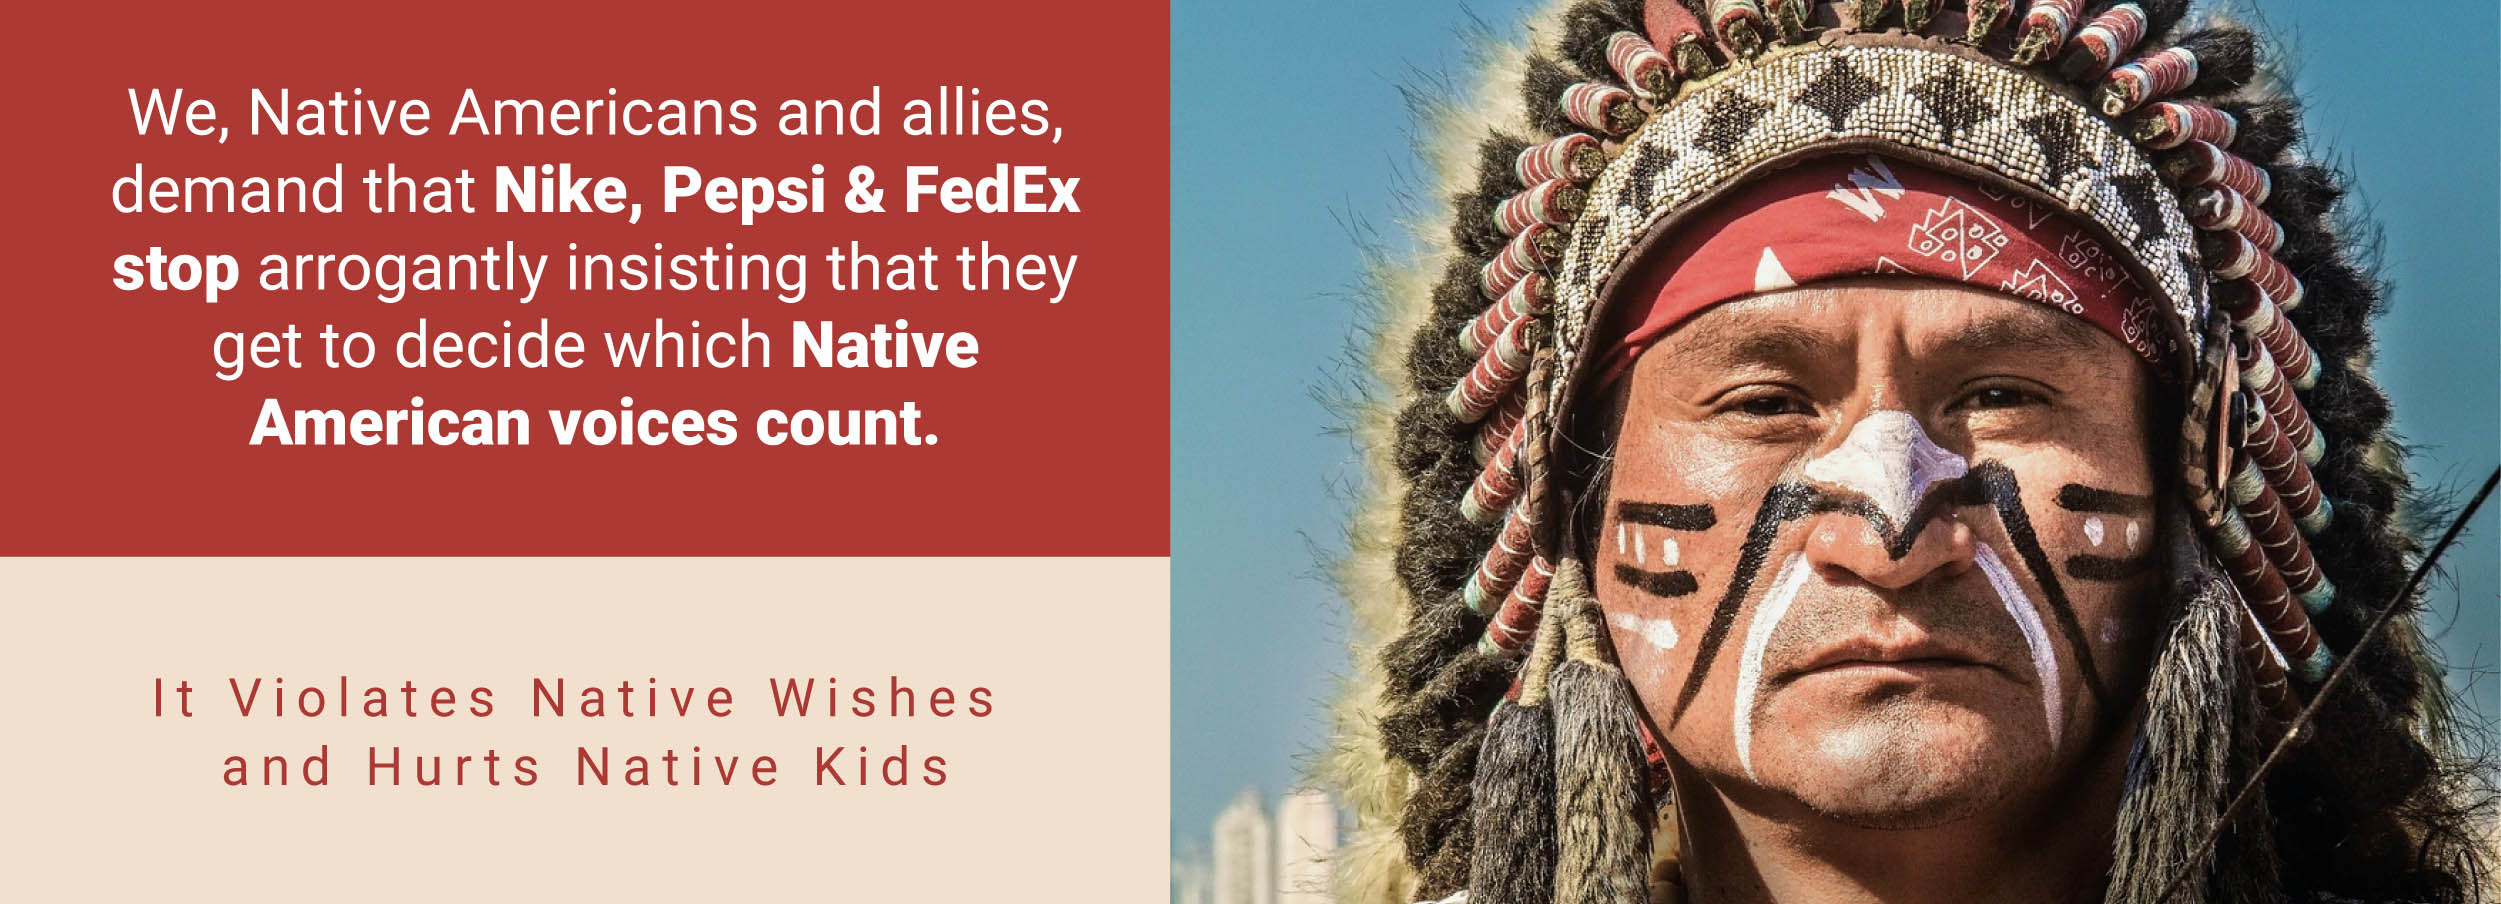 Tell Nike, Pepsi & FedEx They're Ignoring Native American Wishes